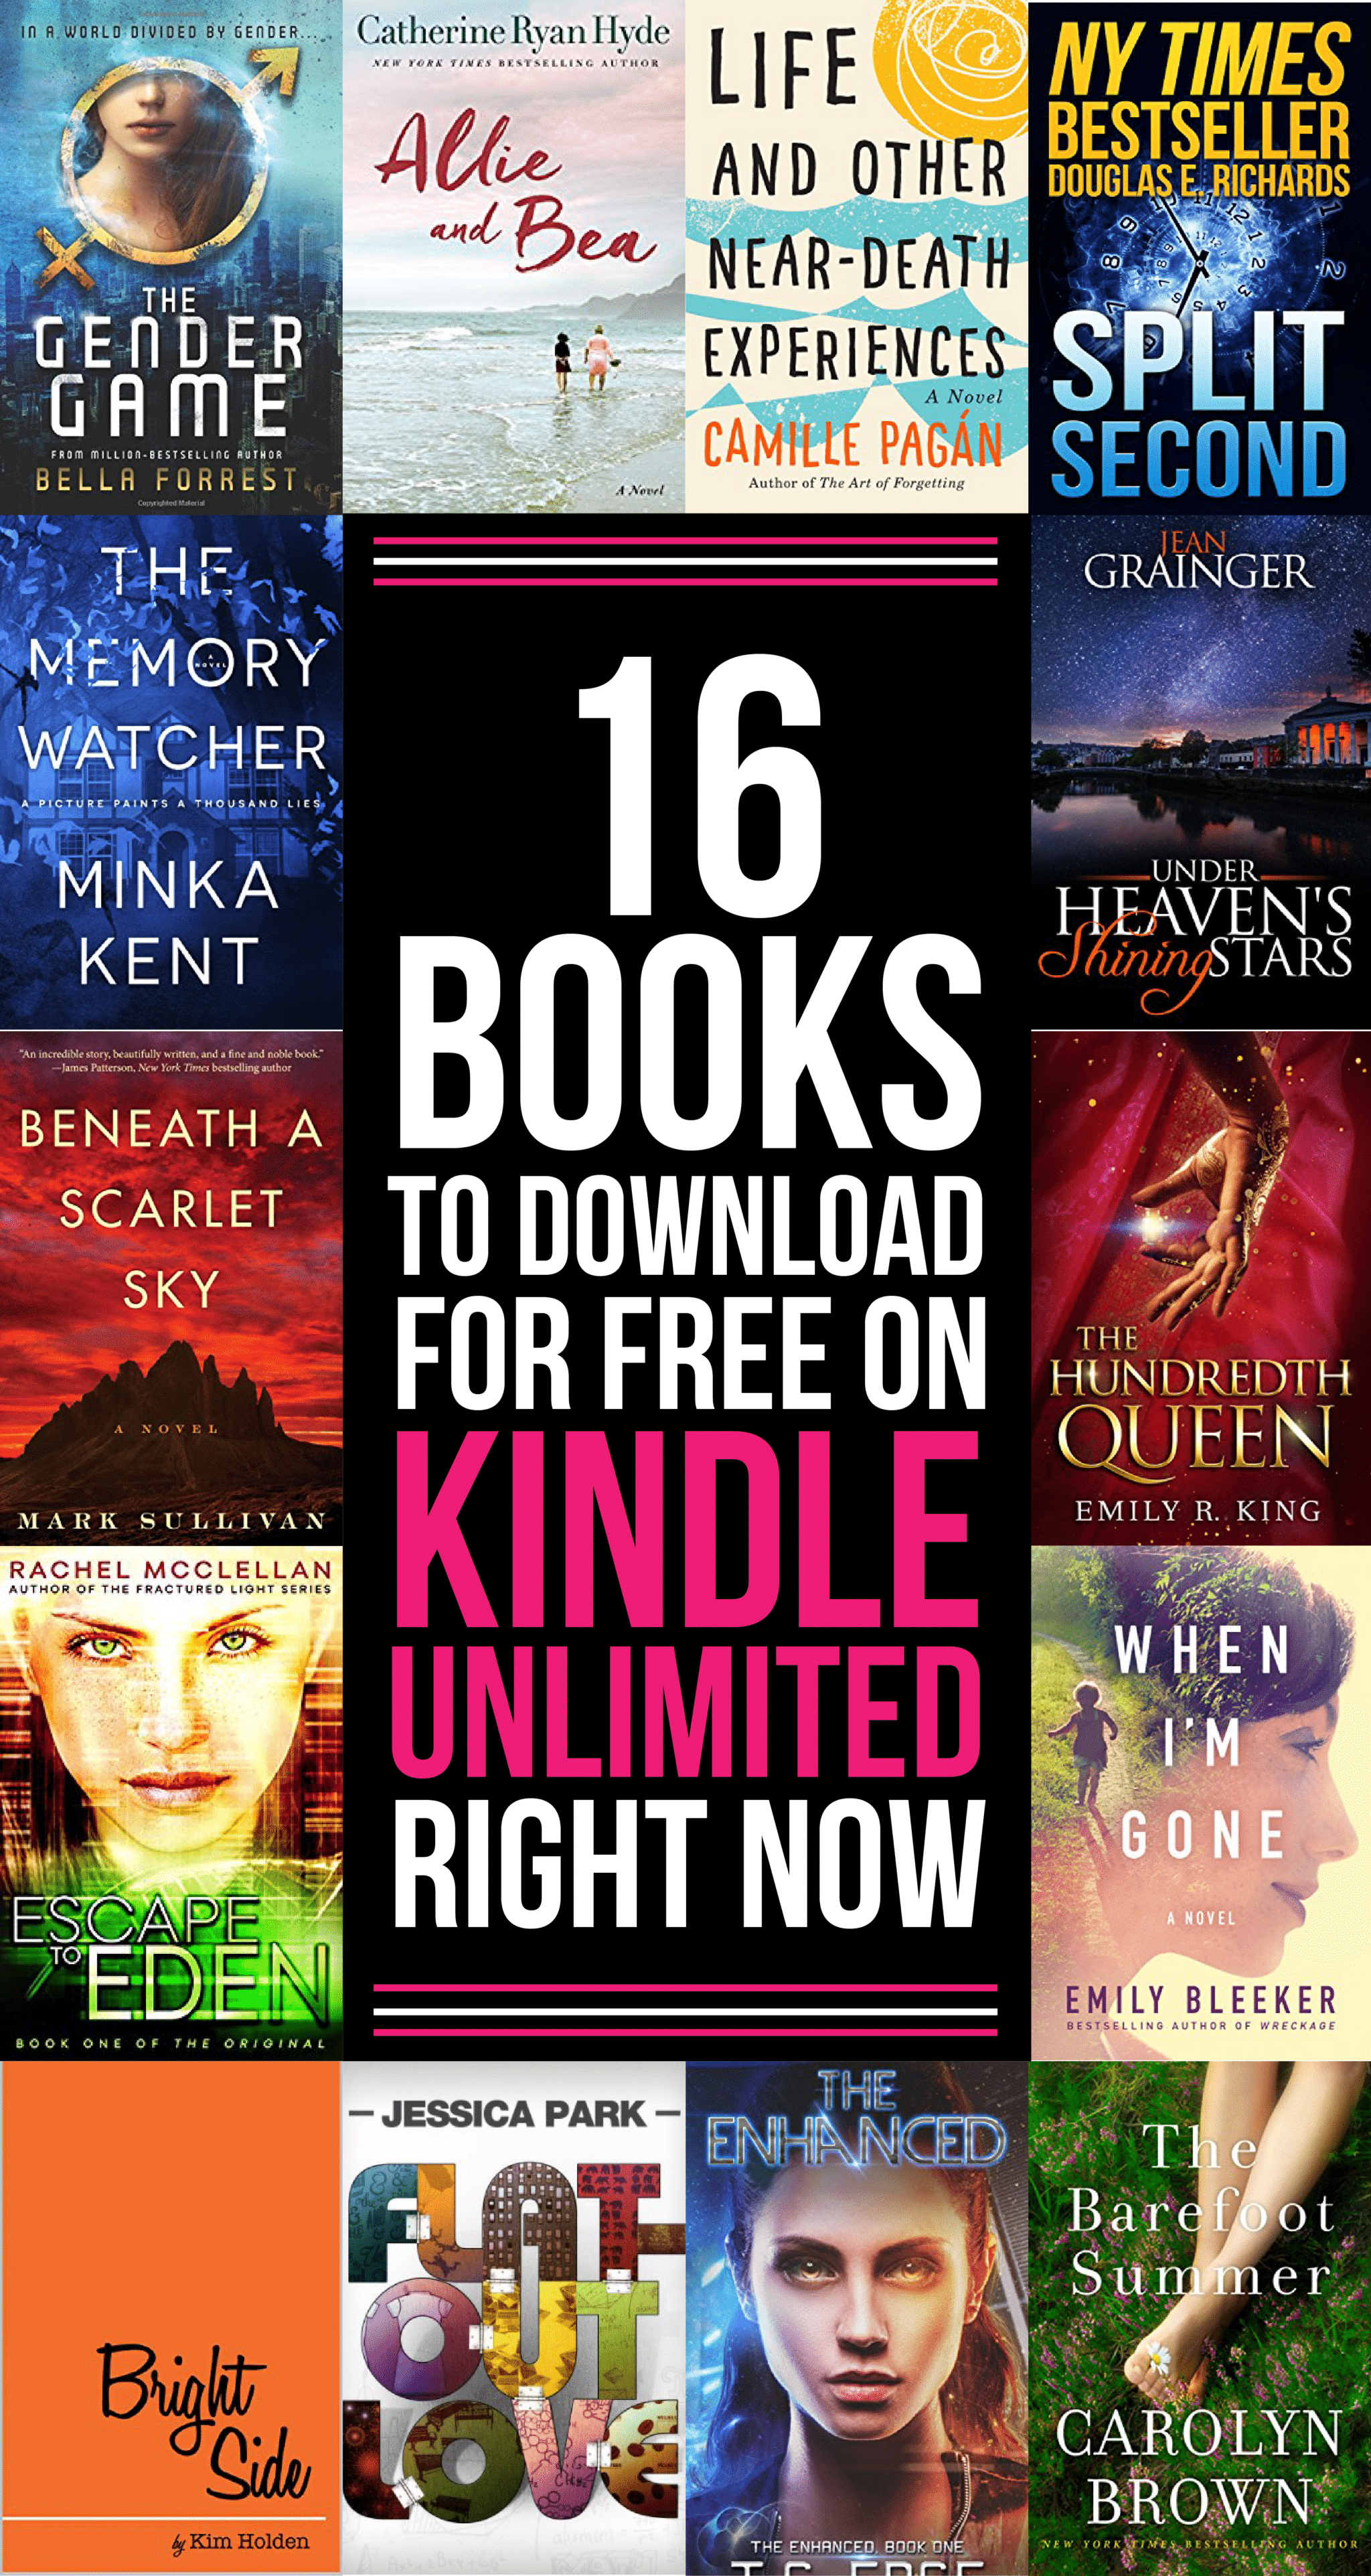 16 great free Kindle books to read with Kindle Unlimited! An entire year's worth of books to add to your Kindle bookshelves! Can't wait to read #8!